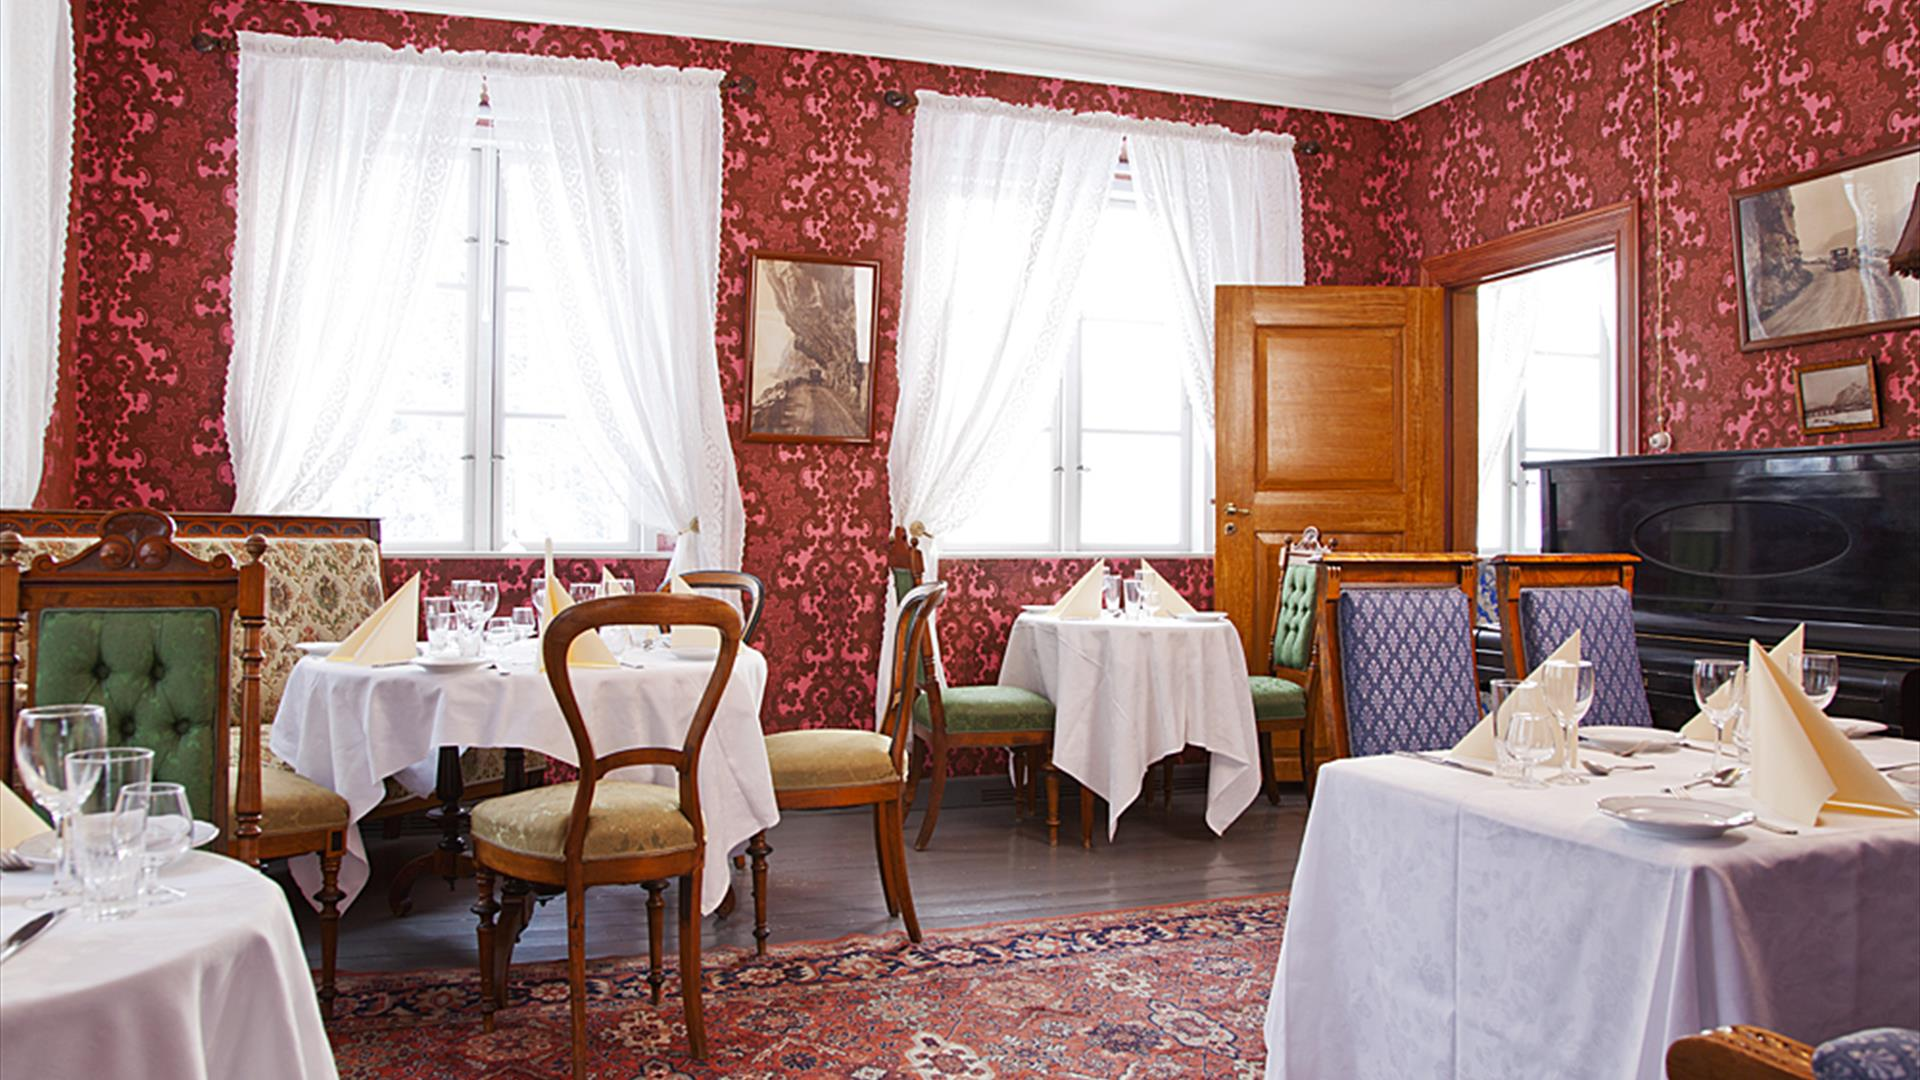 The restaurant at Lysaker Gjestgiveri with its vintage style